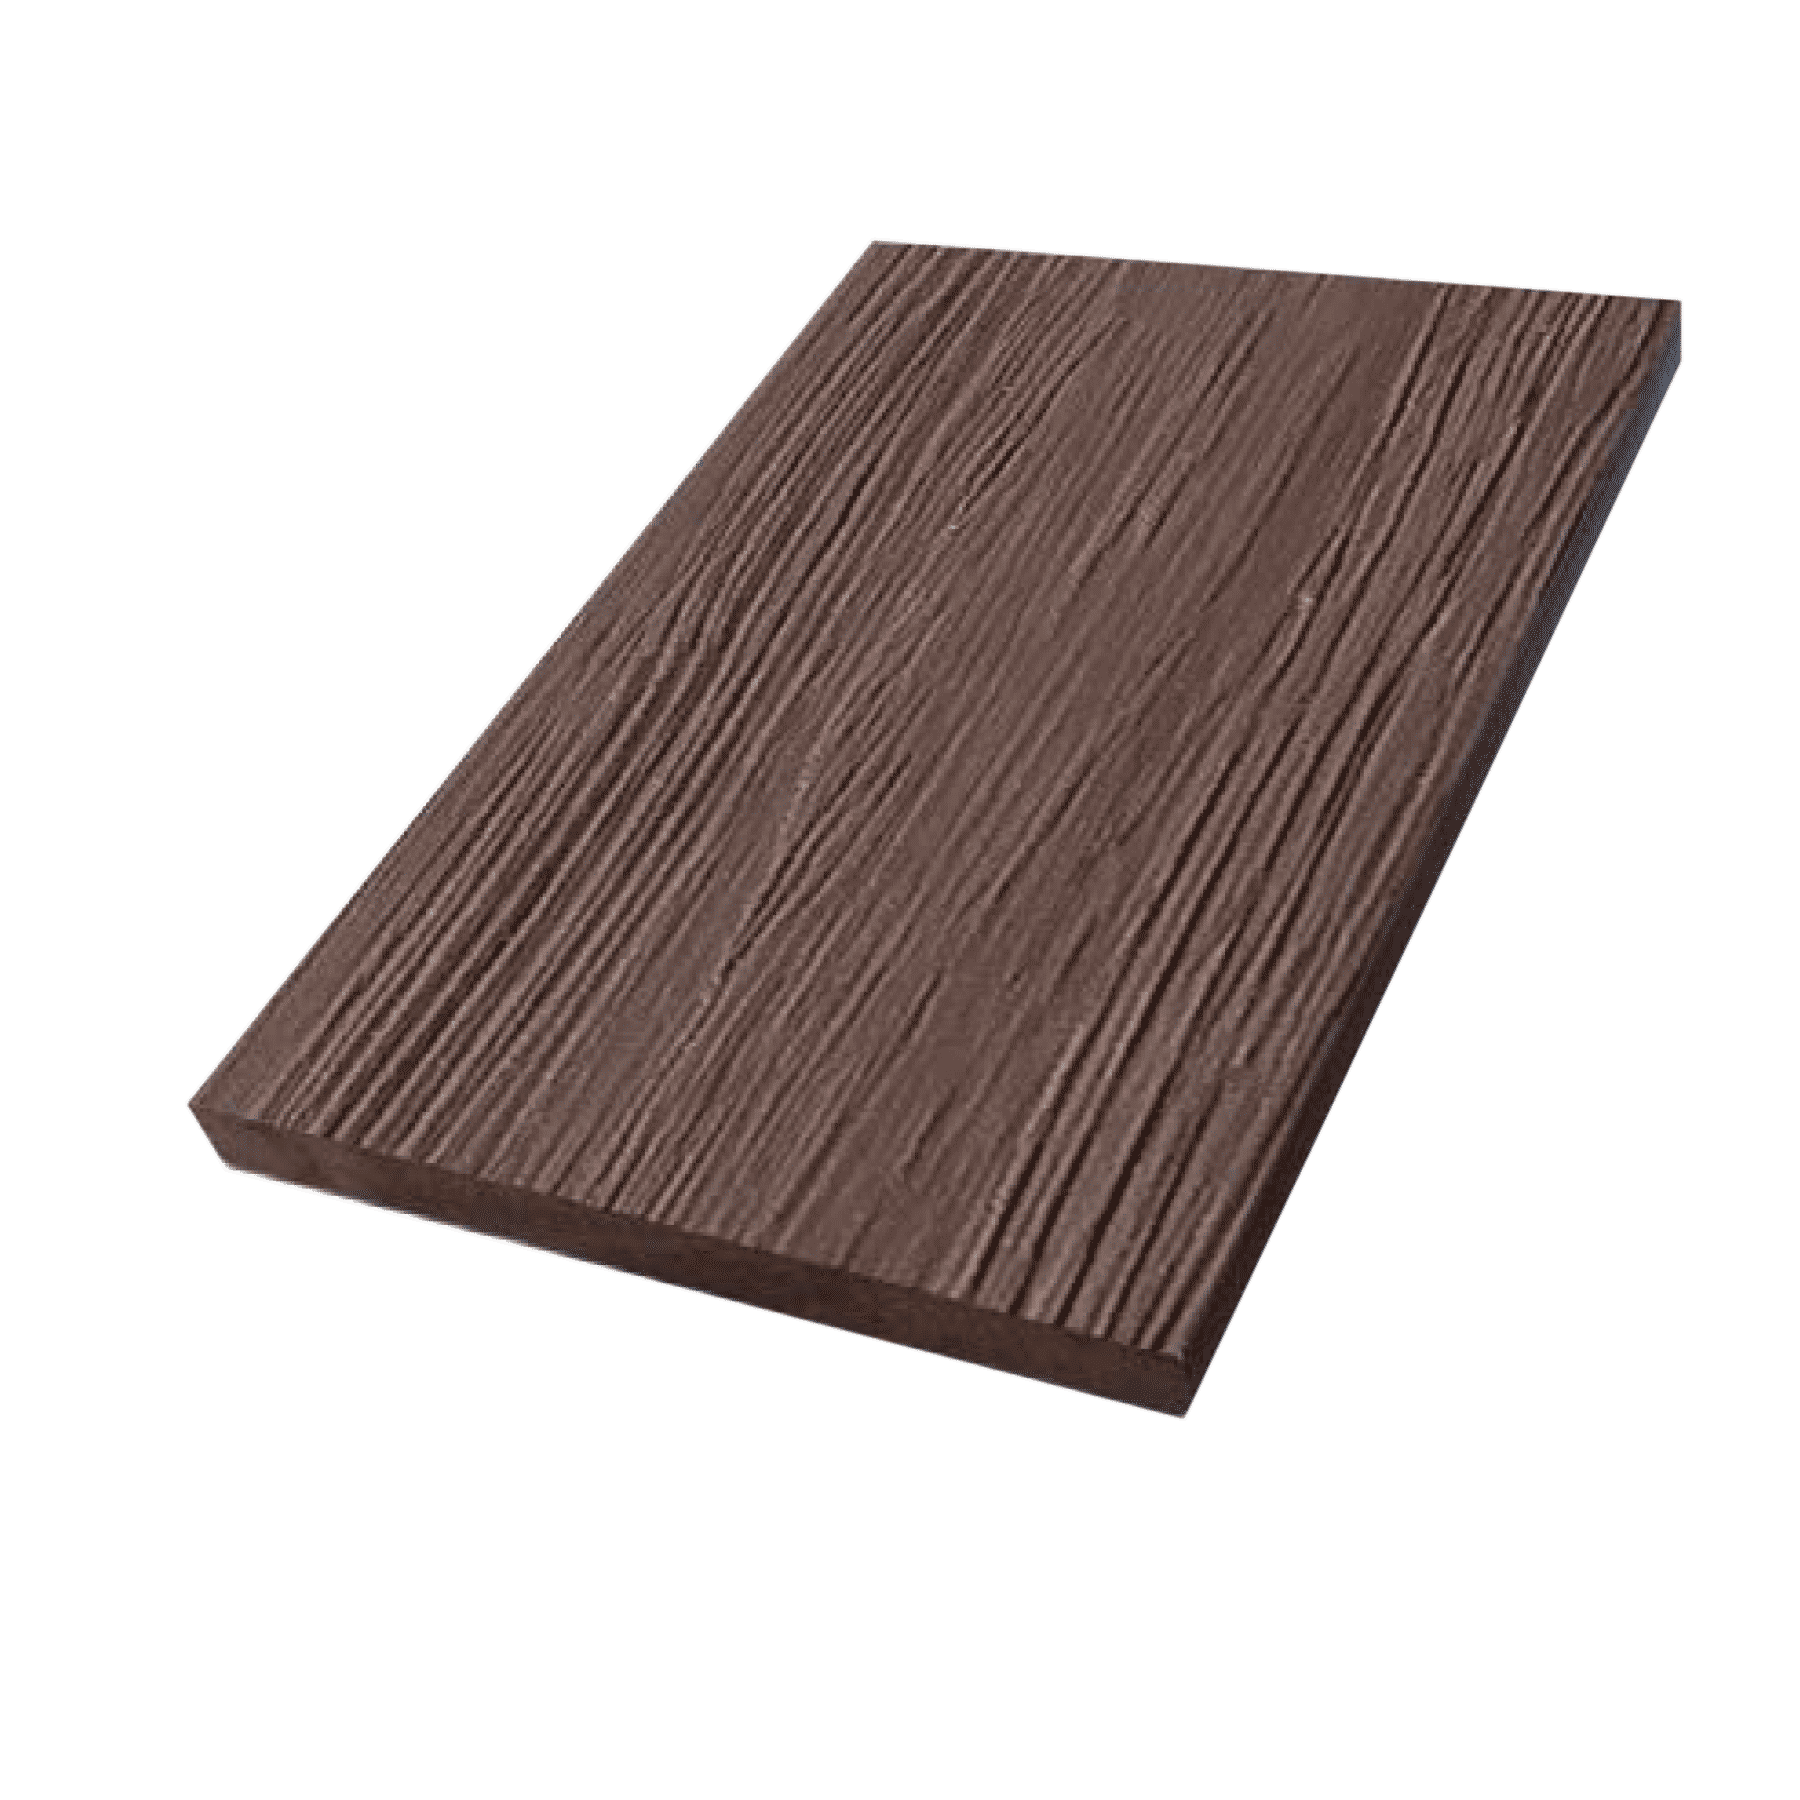 ISTTiger-Cove-_C06_Stair-tread-Carved_wood_grain_CL1-Finish_3D